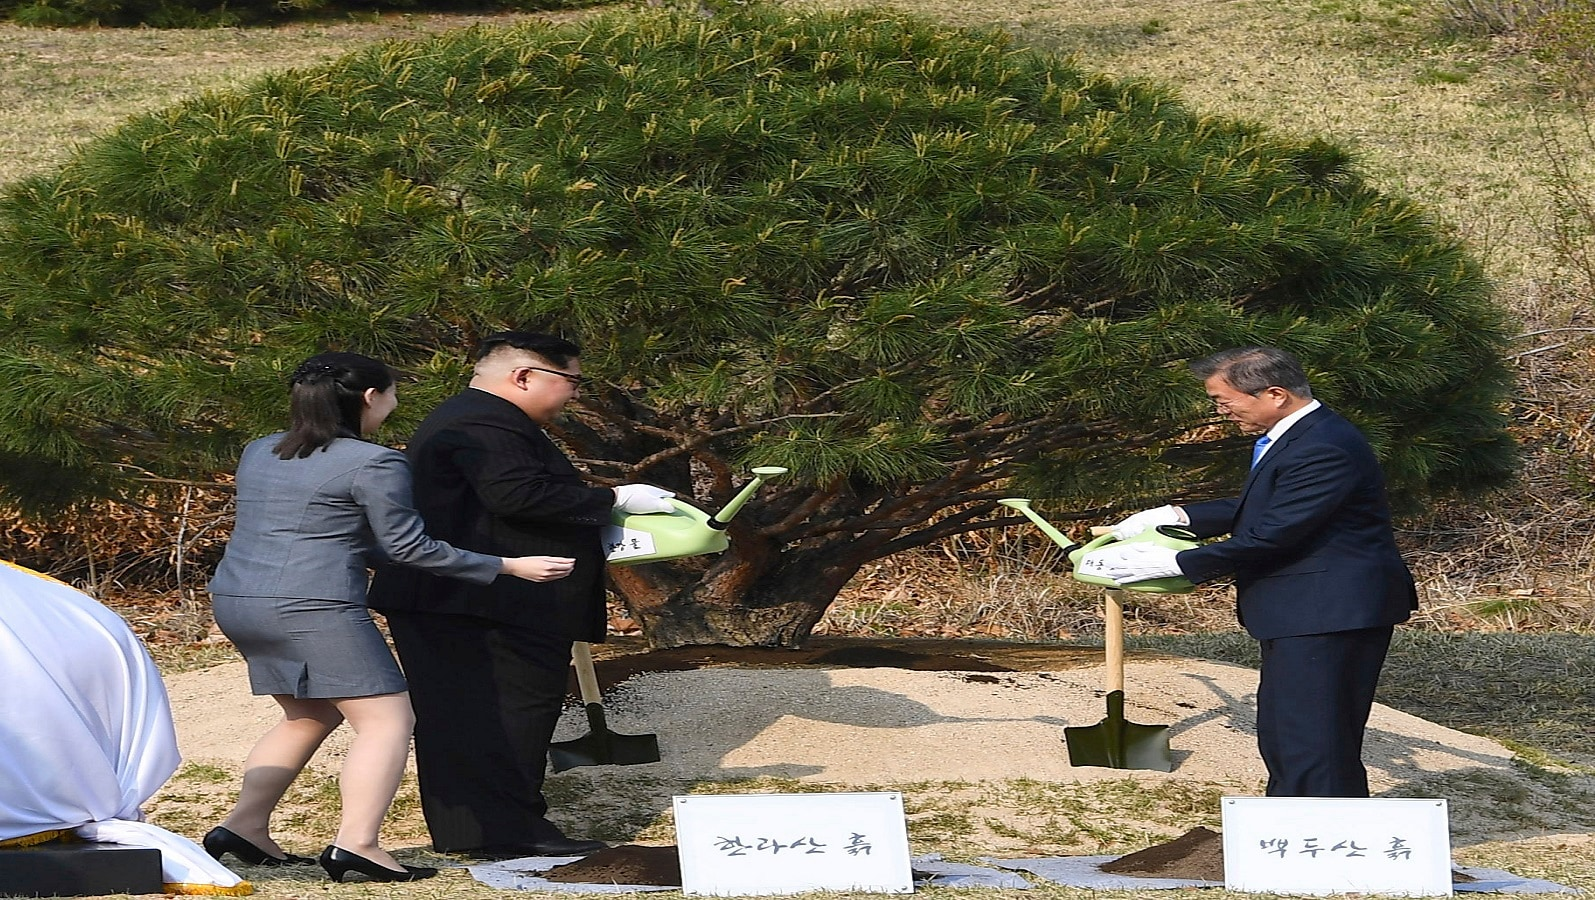 For North Korean leader Kim Jong Un, who is pictured planting a pine tree near the military demarcation line the summit is very crucial. With global pressure mounting along with trade embargo the leader has to come up with a solution that ensures both security and prosperity of his country. South Korea too will want to ease tensions with its poor but trigger happy neighbor. (Korea Summit Press Pool via AP)